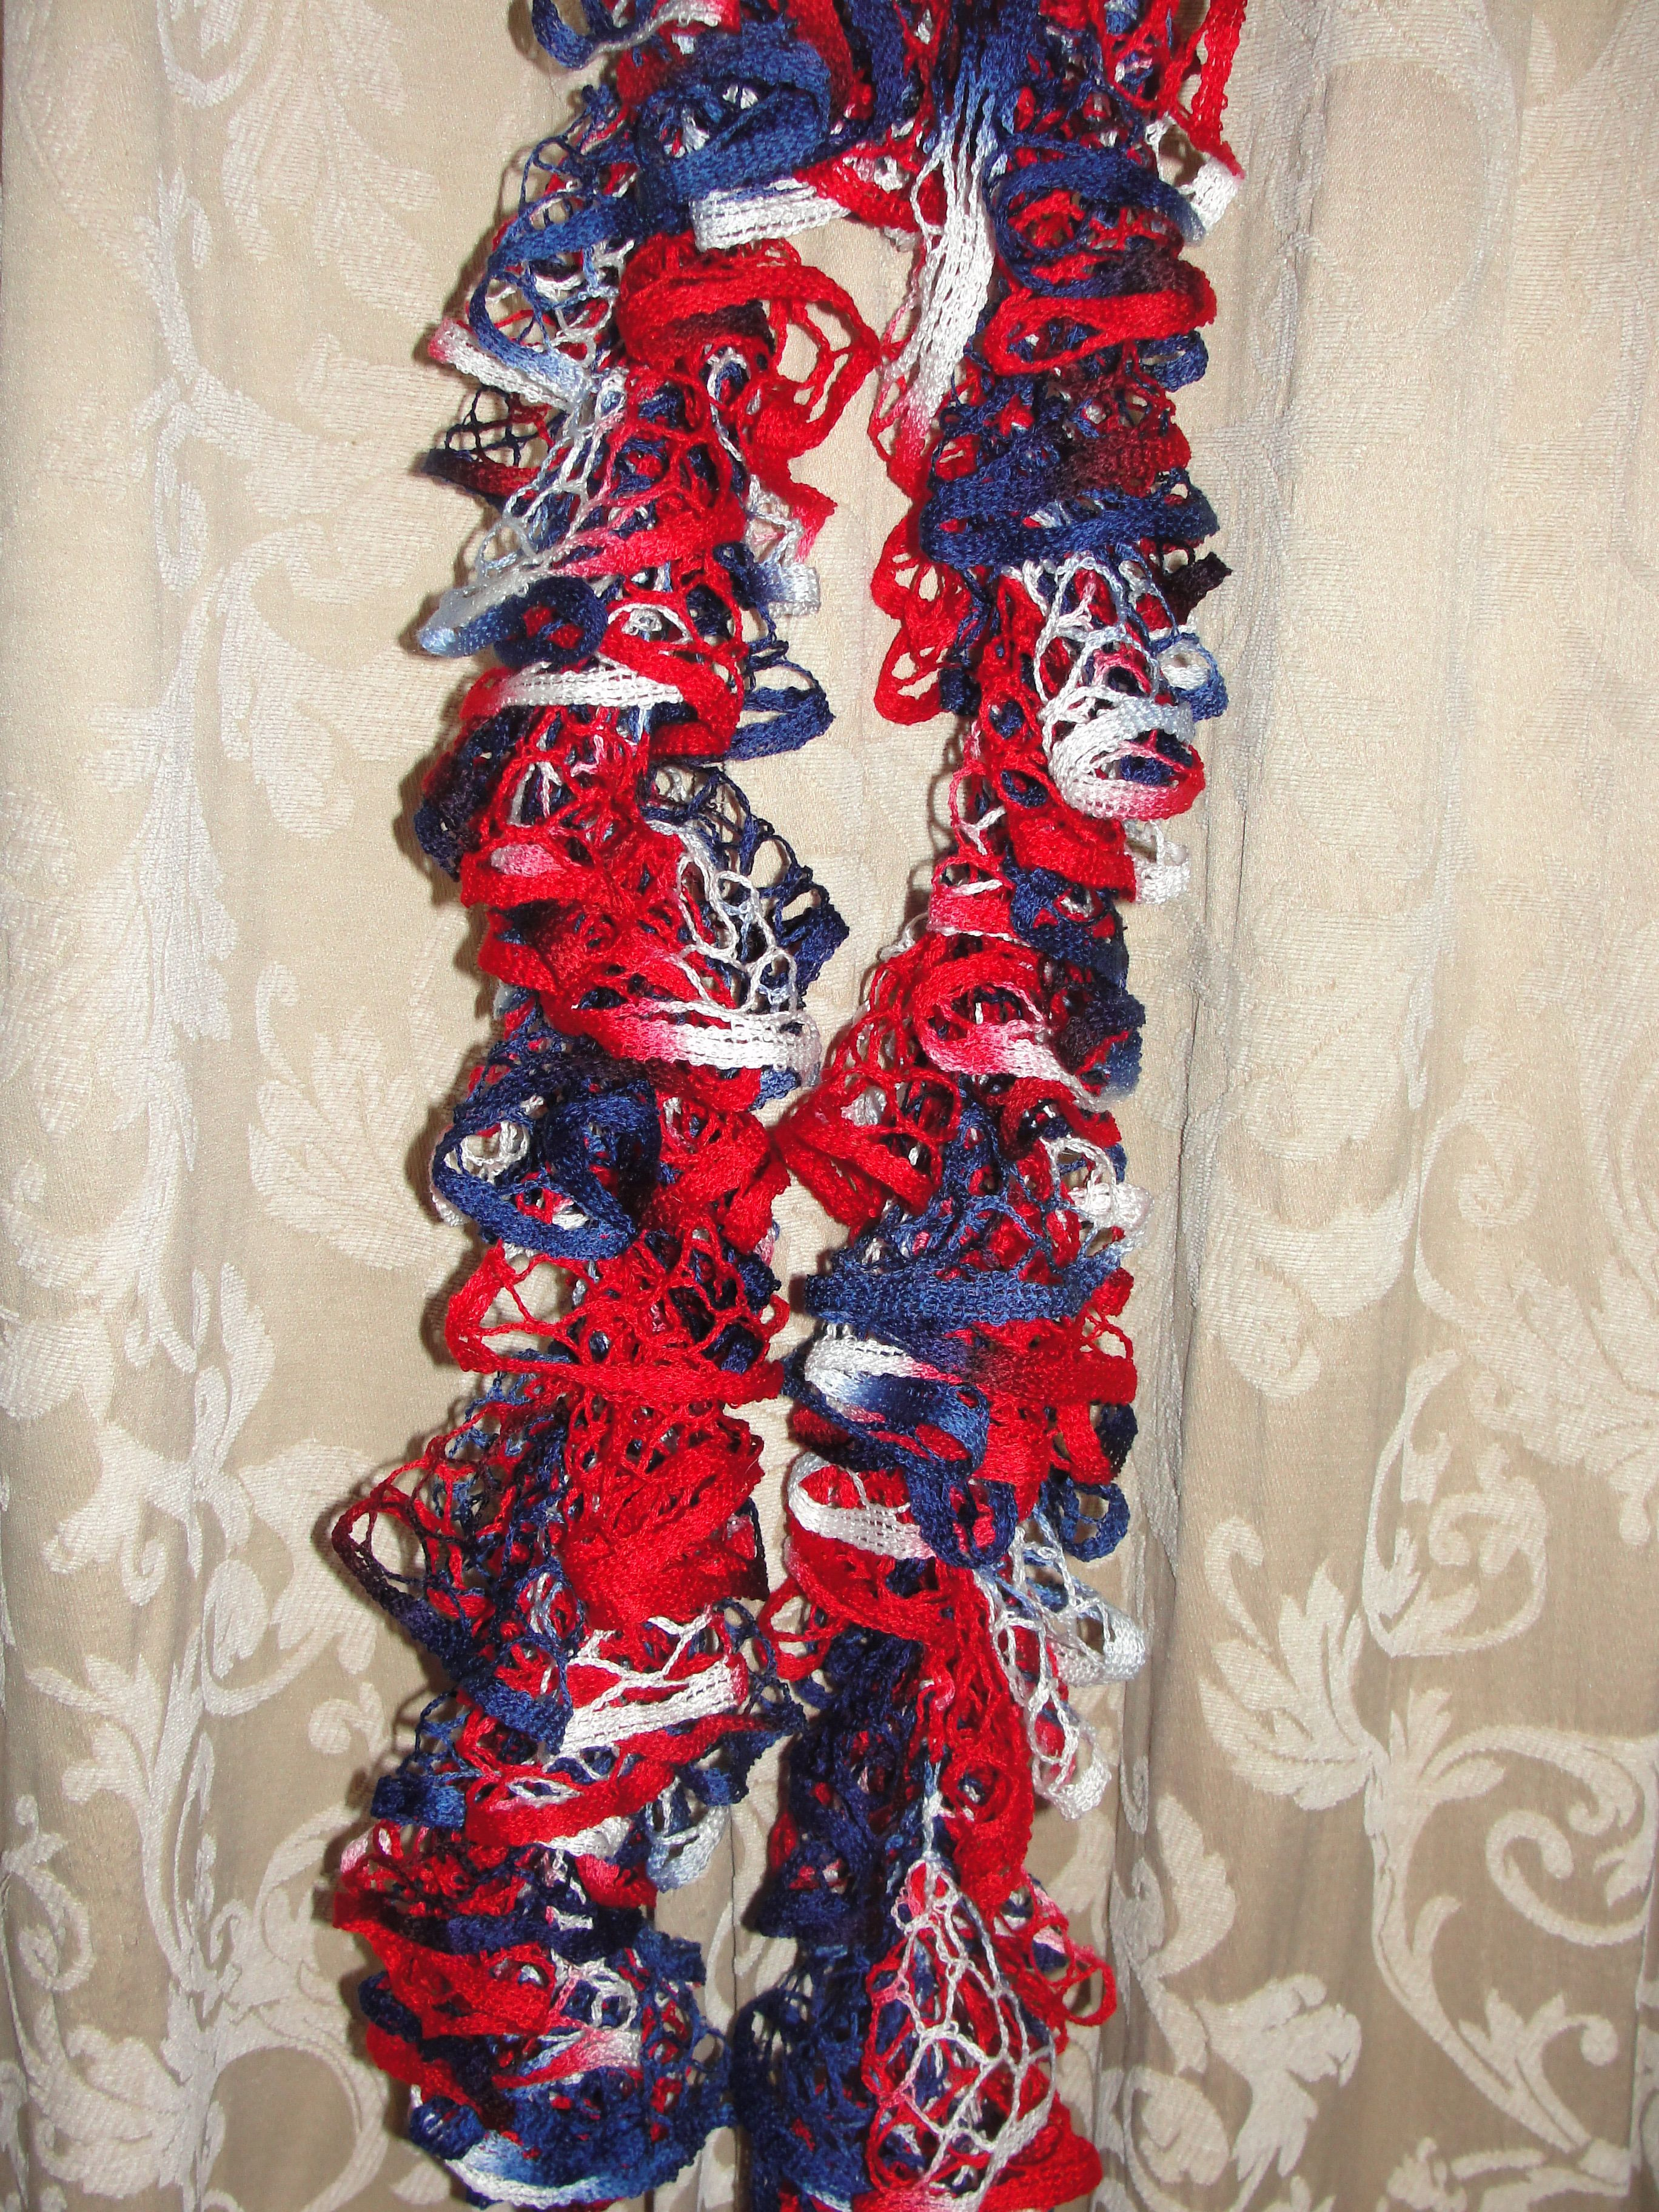 Ruffle scarf starbella yarn america red white blue baby ruffle scarf starbella yarn america red white blue baby dt1010fo